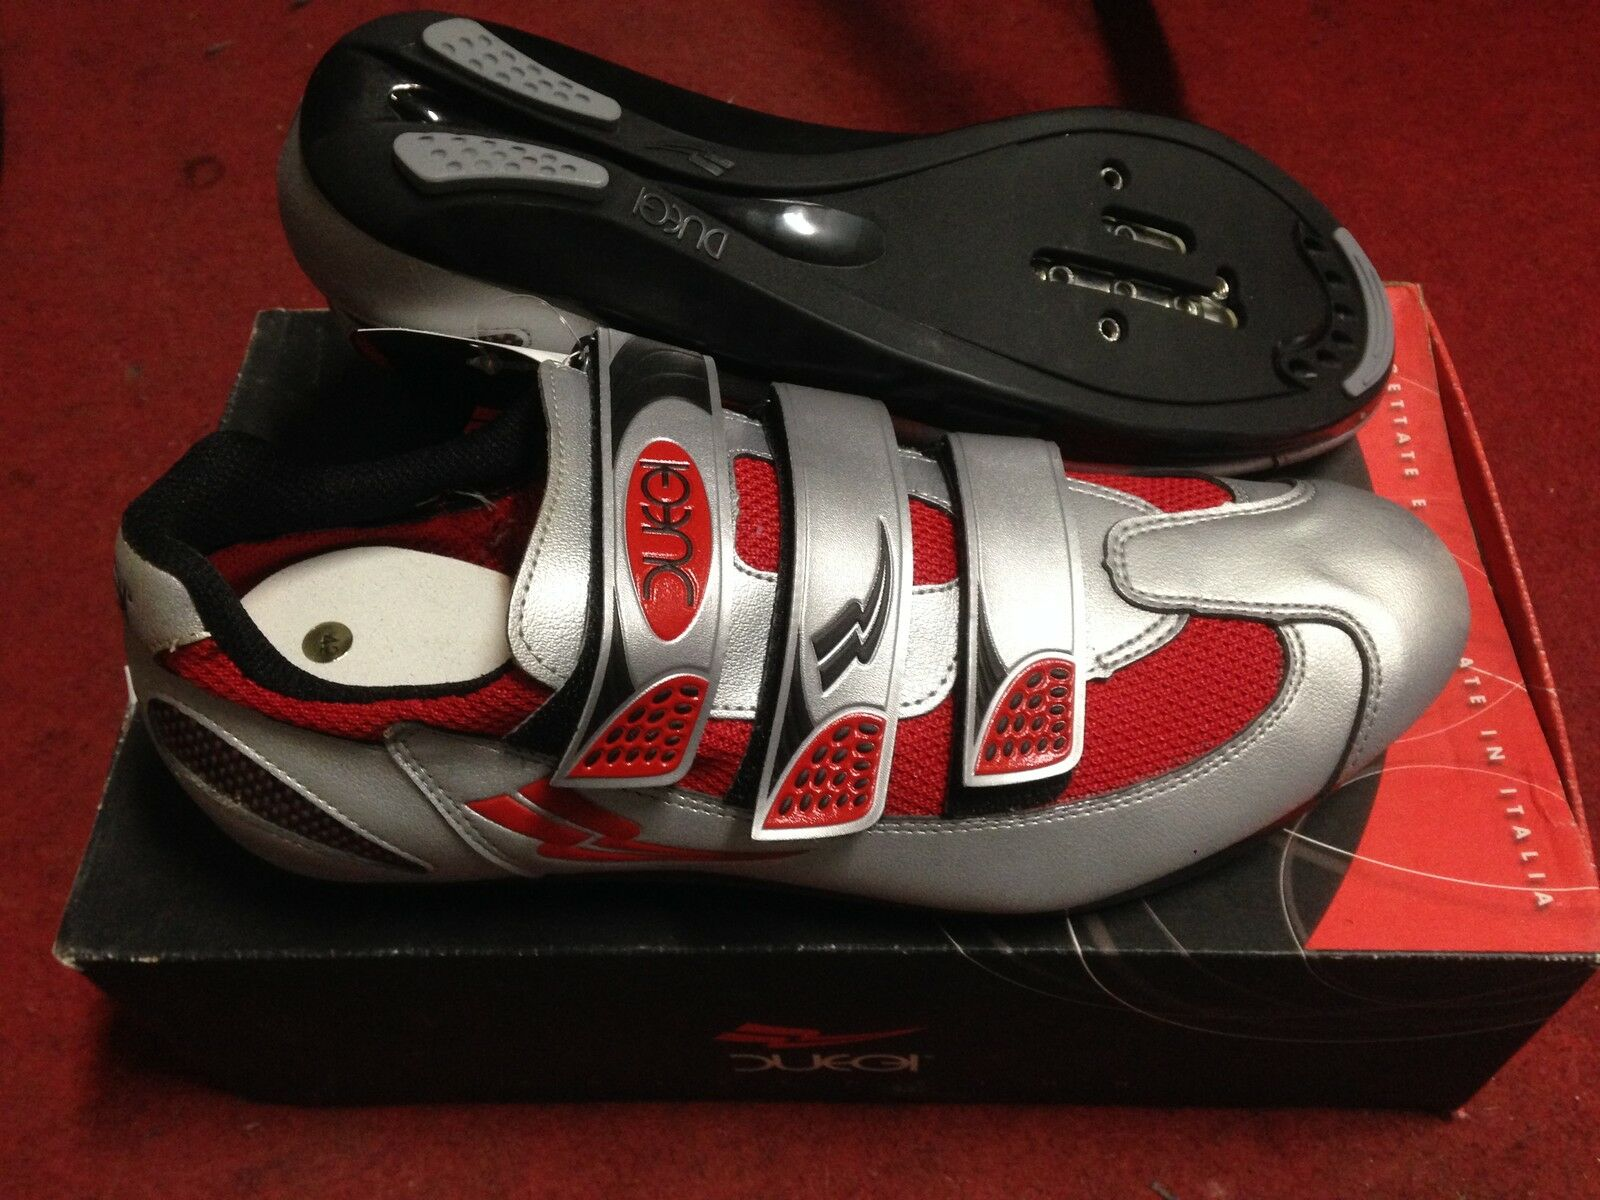 shoes bike race Duegi  Carbon Line Road Bike shoes 37,38,39,42 Made in   ultra-low prices